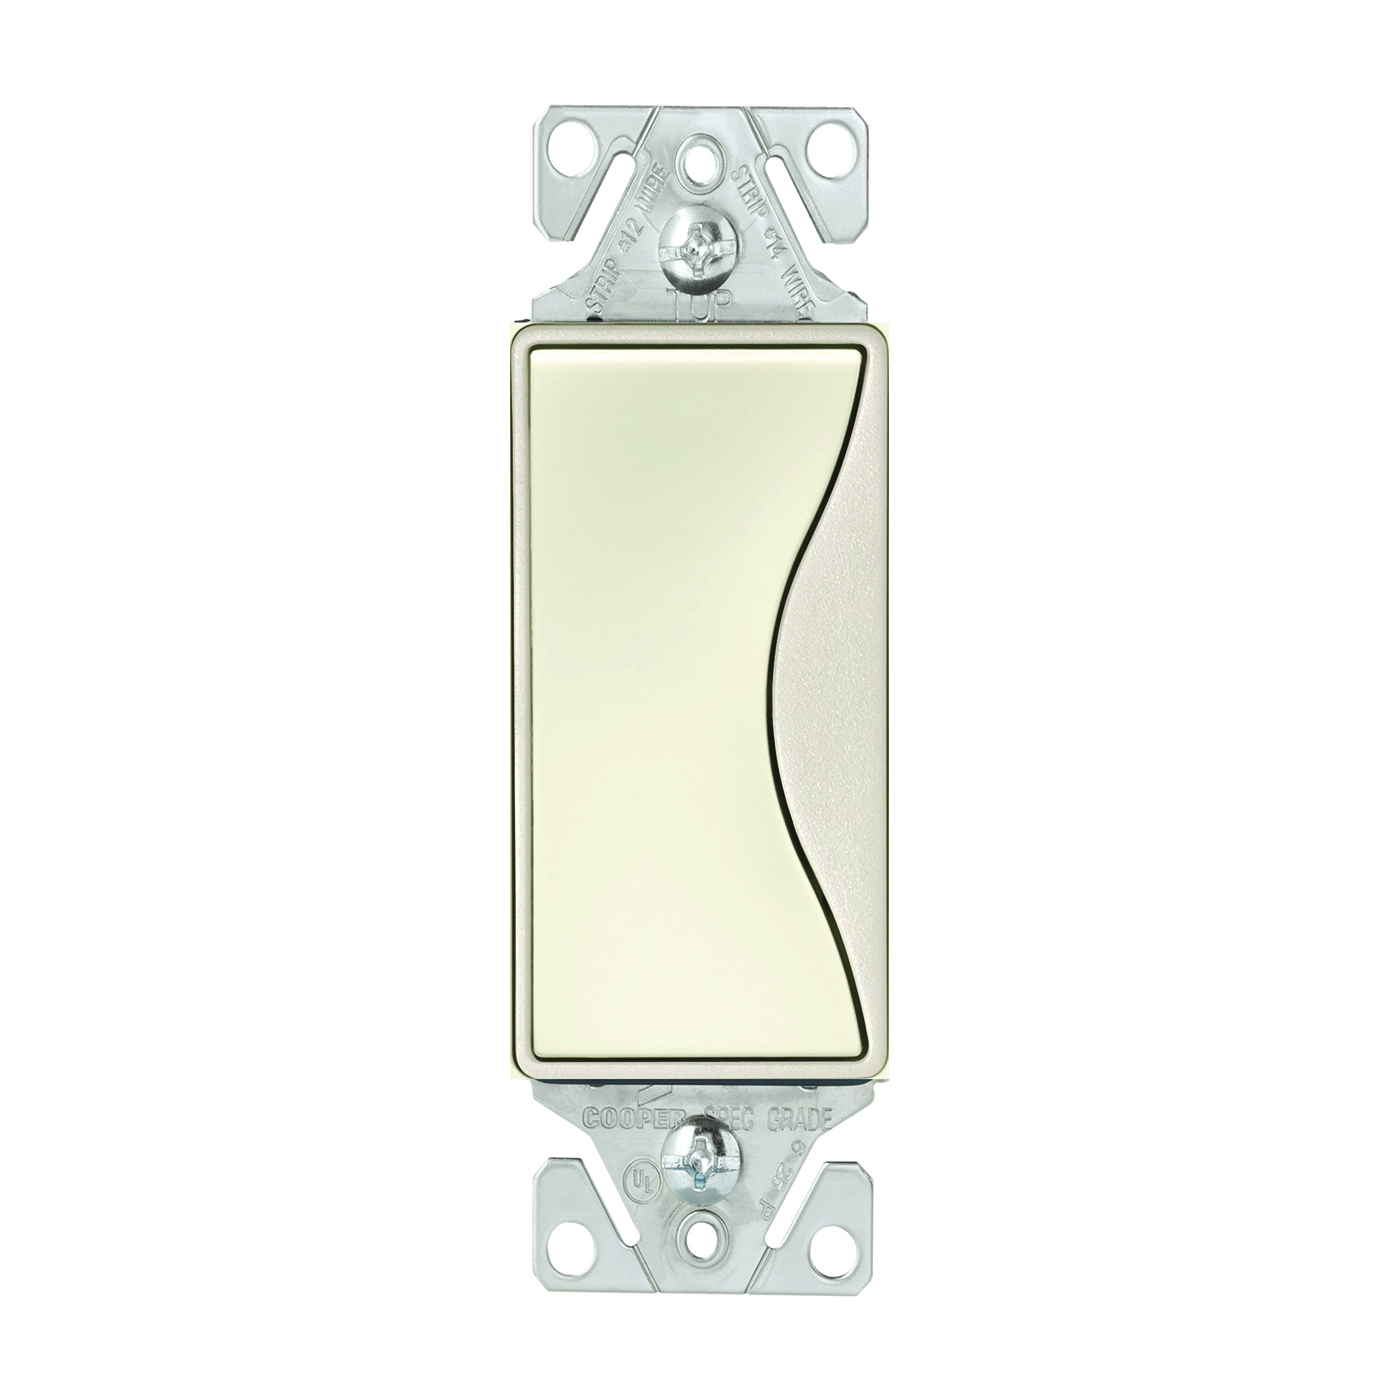 Picture of Eaton Wiring Devices ASPIRE 9501DS Rocker Switch, 15 A, 120/277 V, Single-Pole, Push-In Terminal, Desert Sand